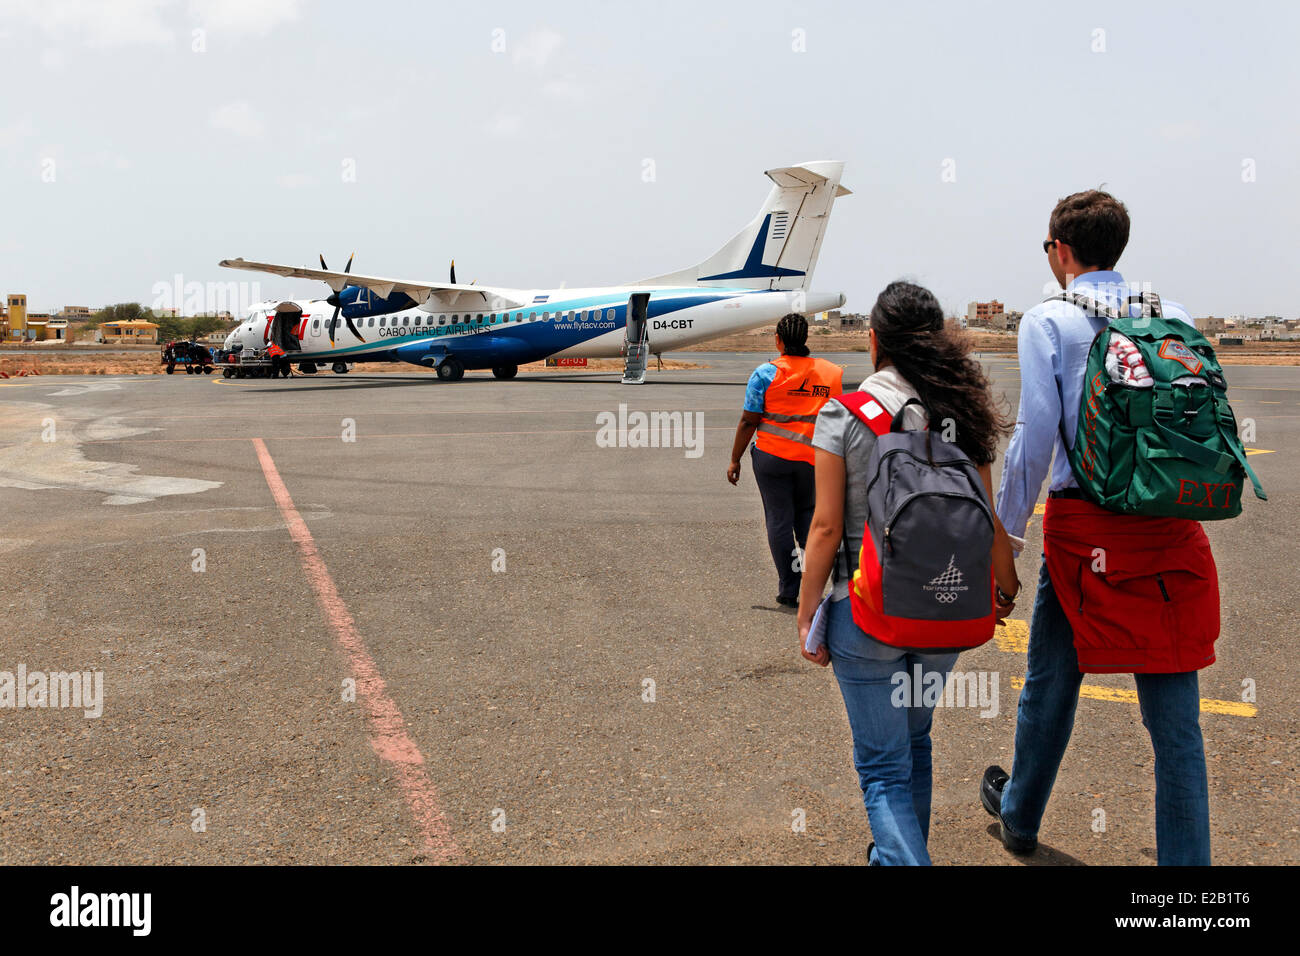 Cape Verde, Sal, airport, passengers boarding a island hopping flight - Stock Image